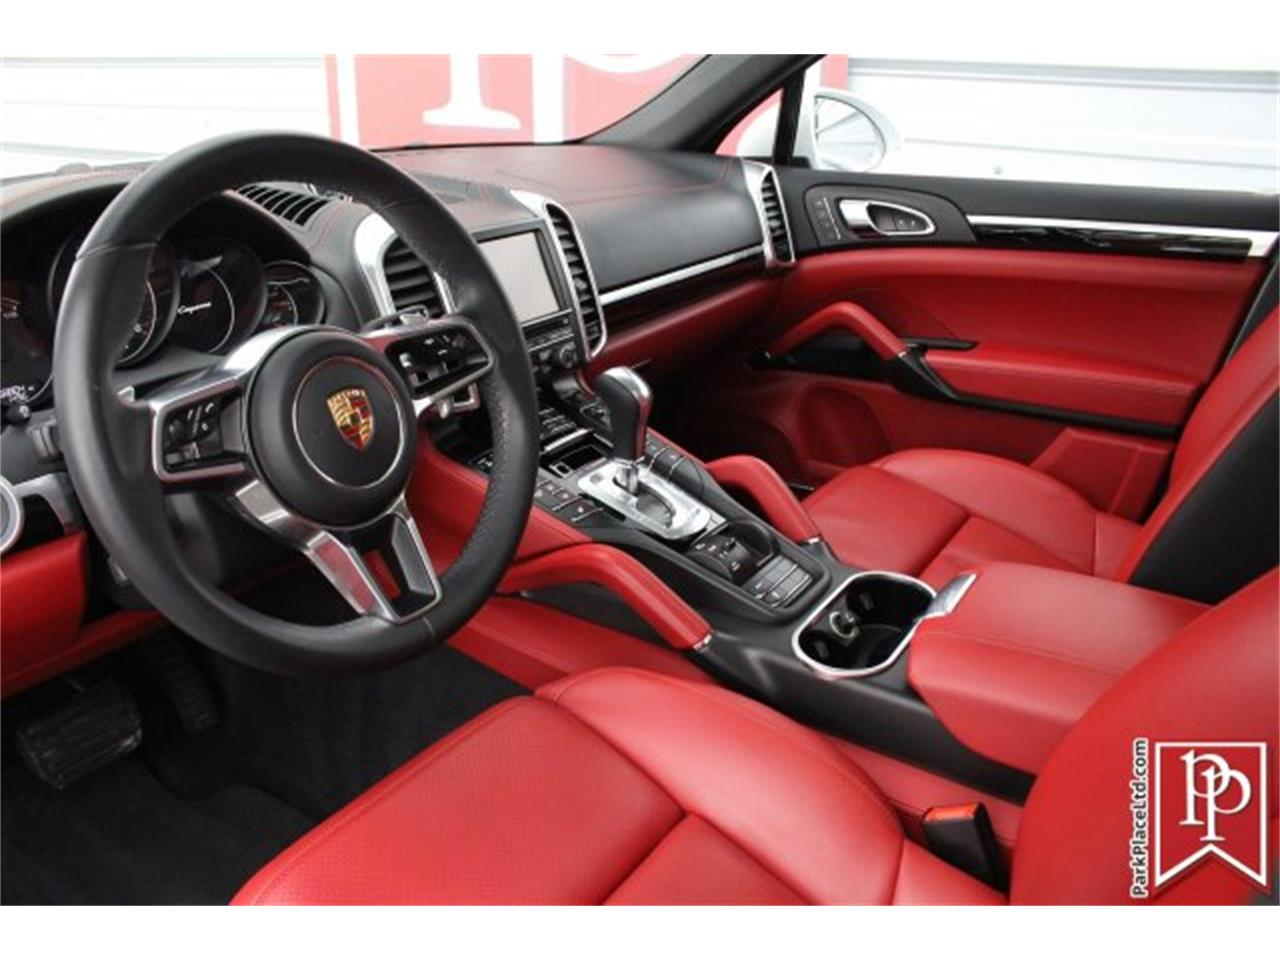 2015 Porsche Cayenne for sale in Bellevue, WA – photo 9